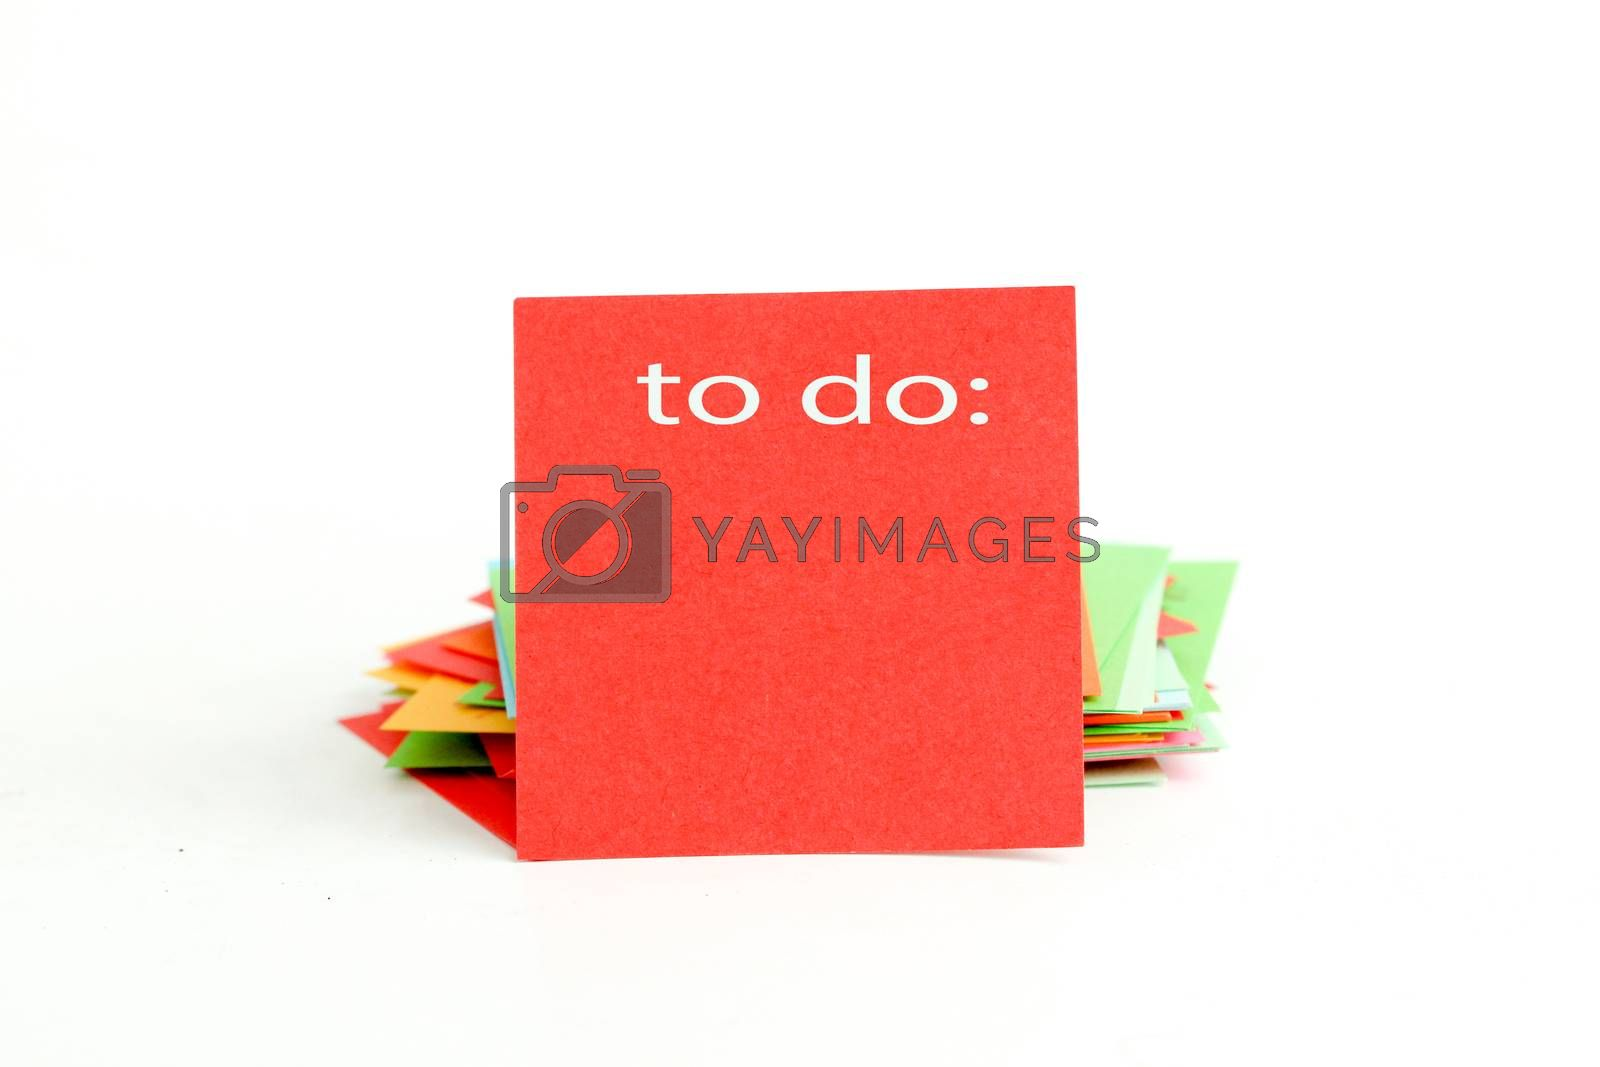 picture of a red note paper with text to do